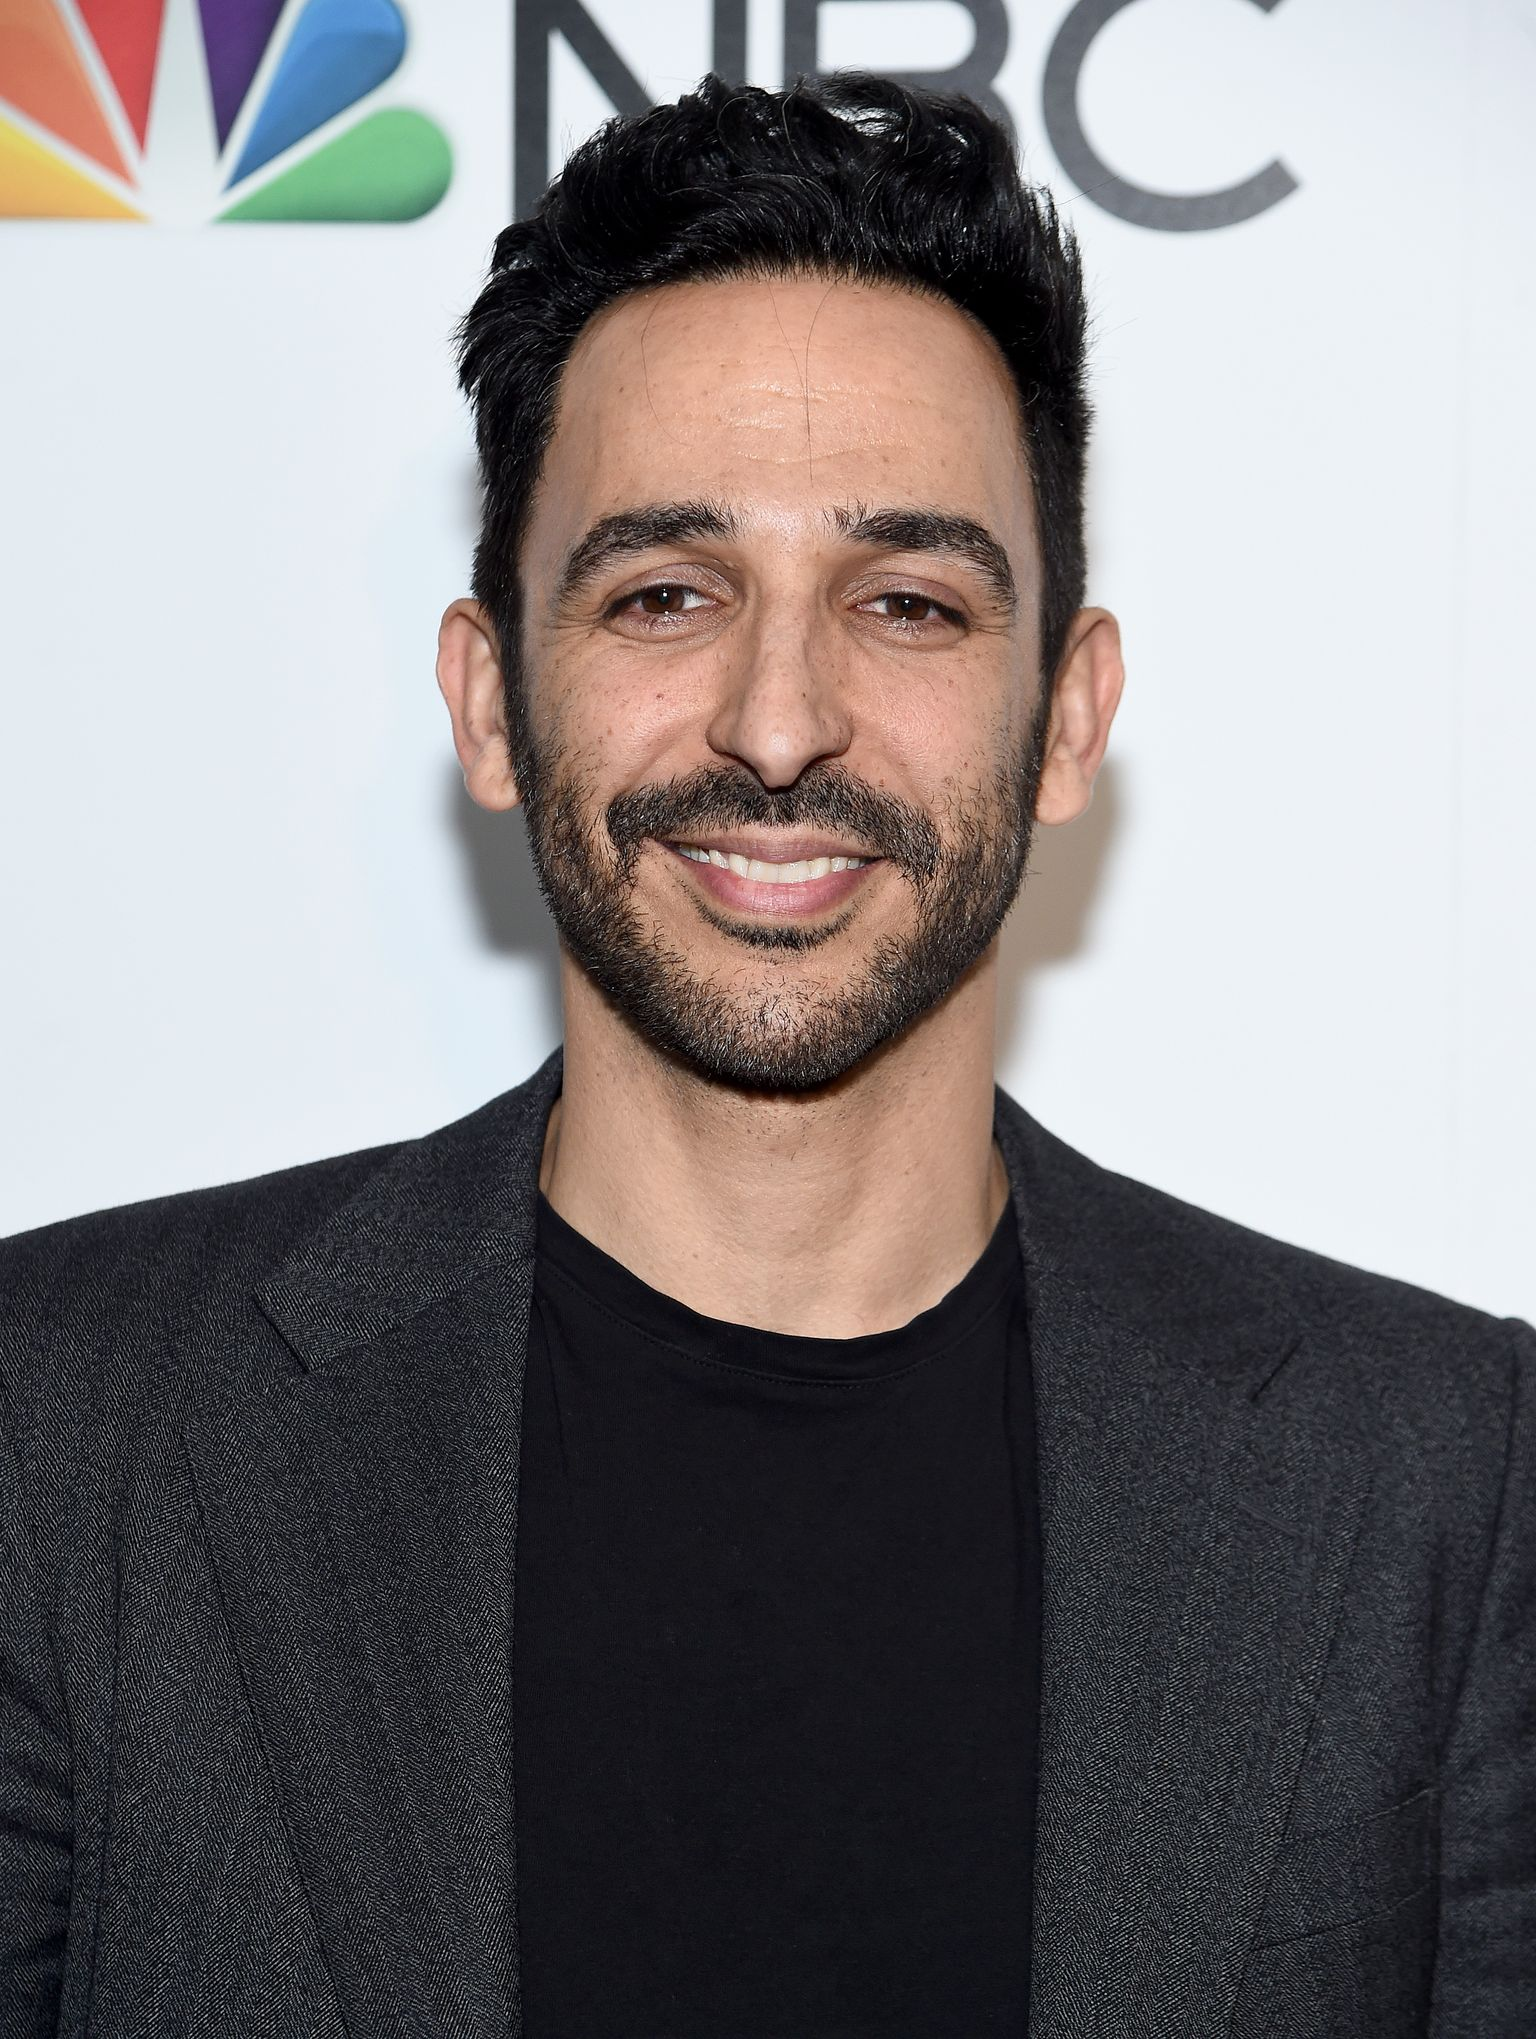 Amir Arison at a NBC and The Cinema Society event in January 2020 in New York City | Source: Getty Images